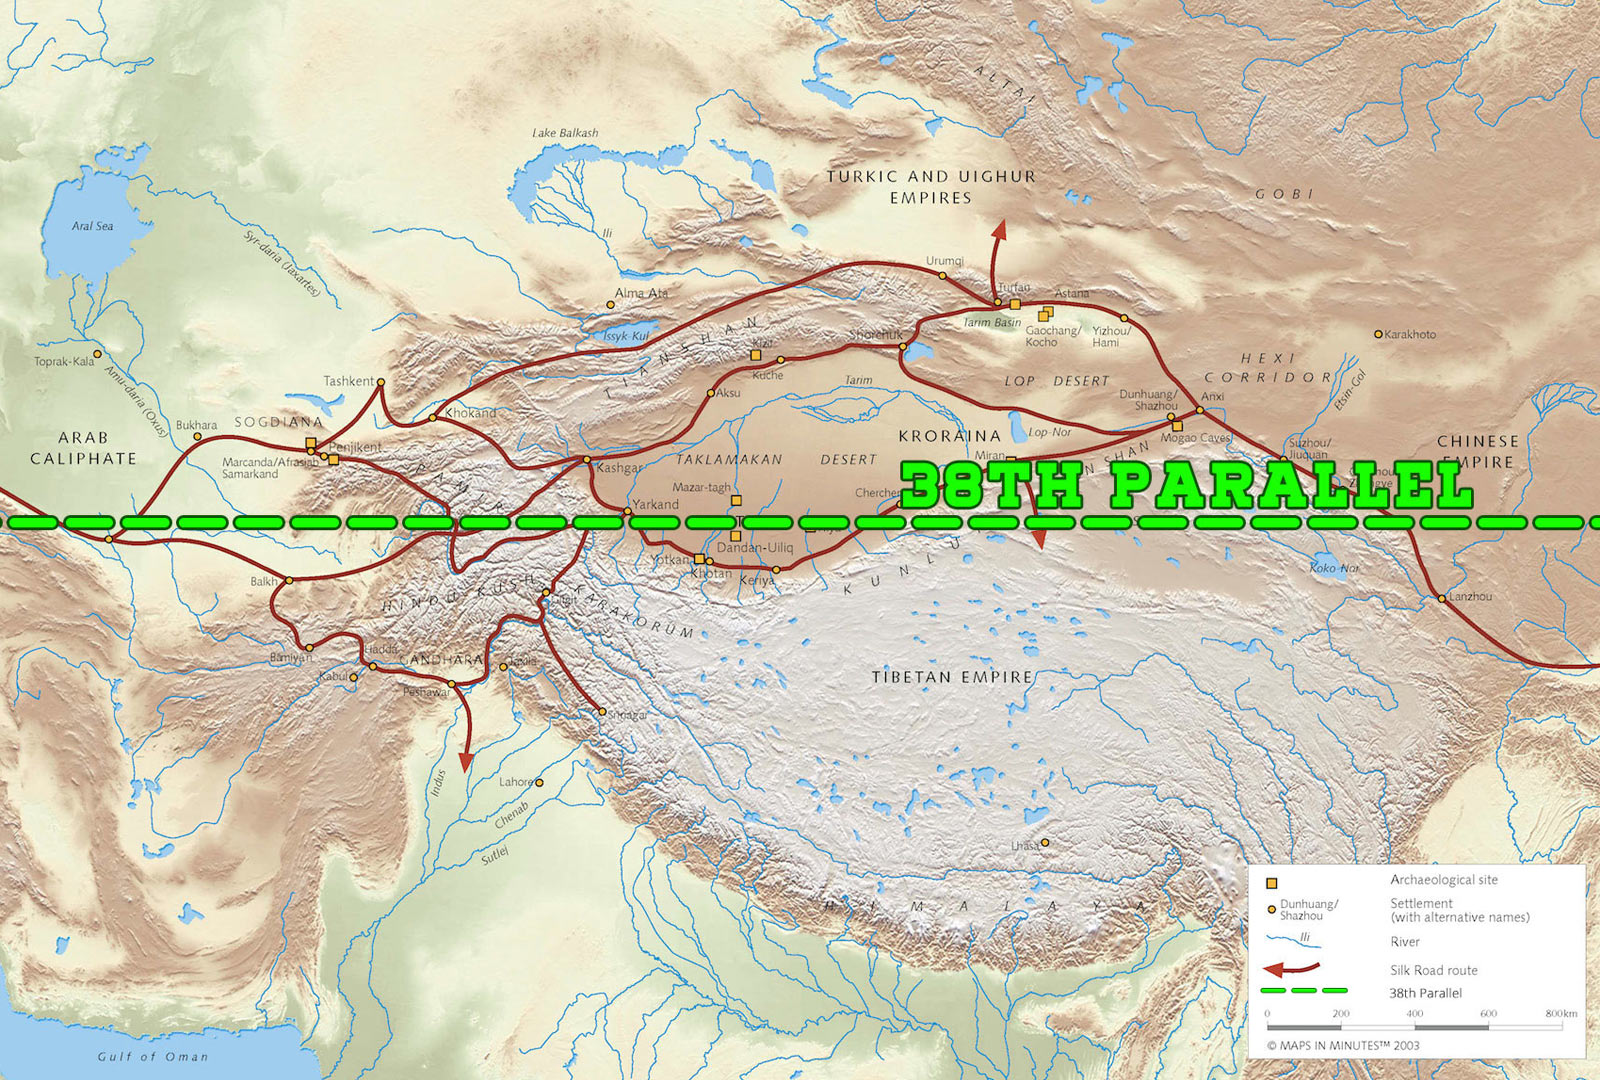 The 38th Parallel and the Silk Road